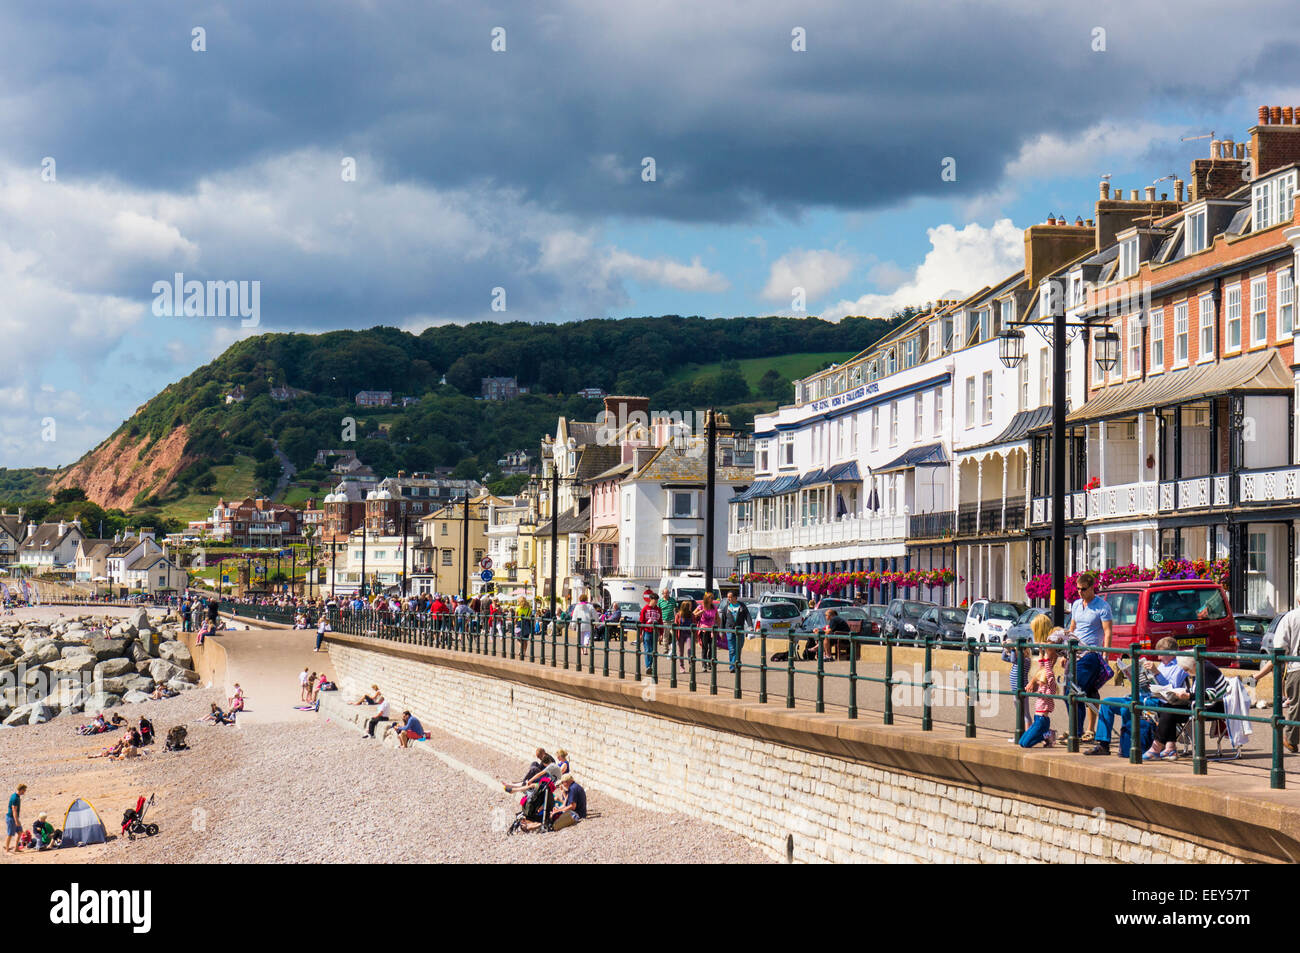 Seafront at Sidmouth, East Devon, England, UK Stock Photo